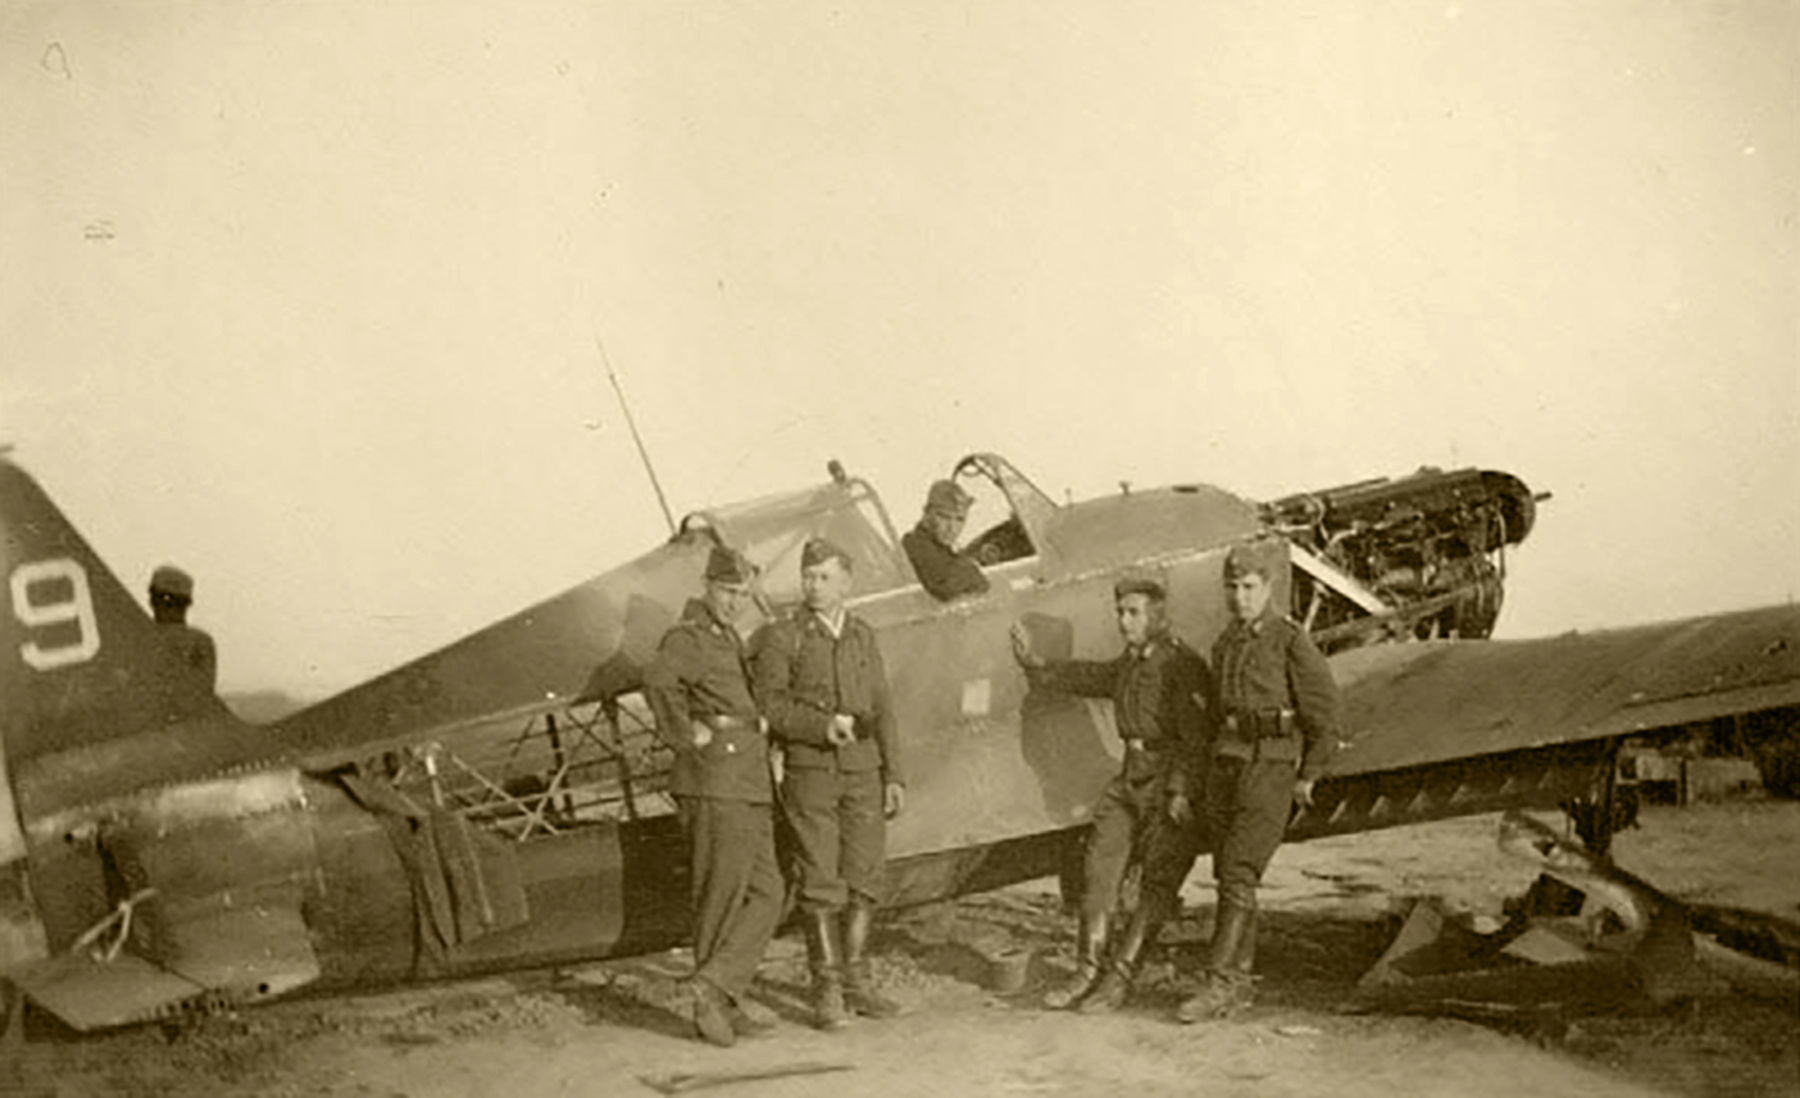 French Airforce Dewoitine D 520 destroyed on the ground battle of France May 1940 ebay 01